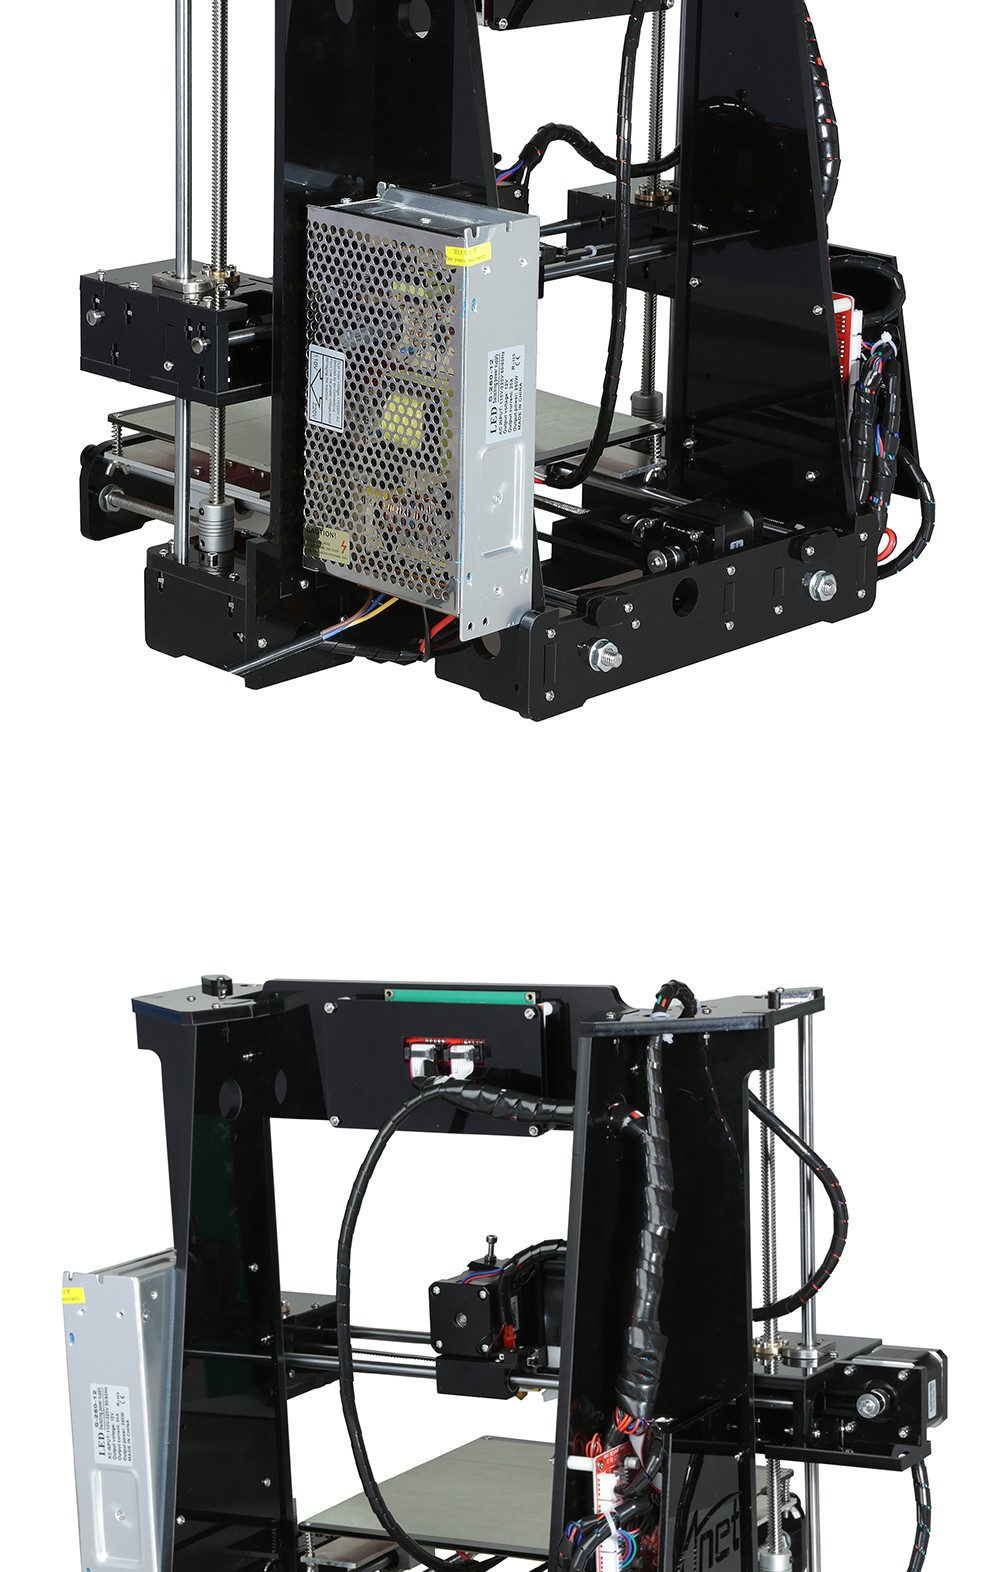 3d Printer Comparison >> Anet A6 A8 3D Printer Kit +Hotbed+Filament+SD Card+LCD